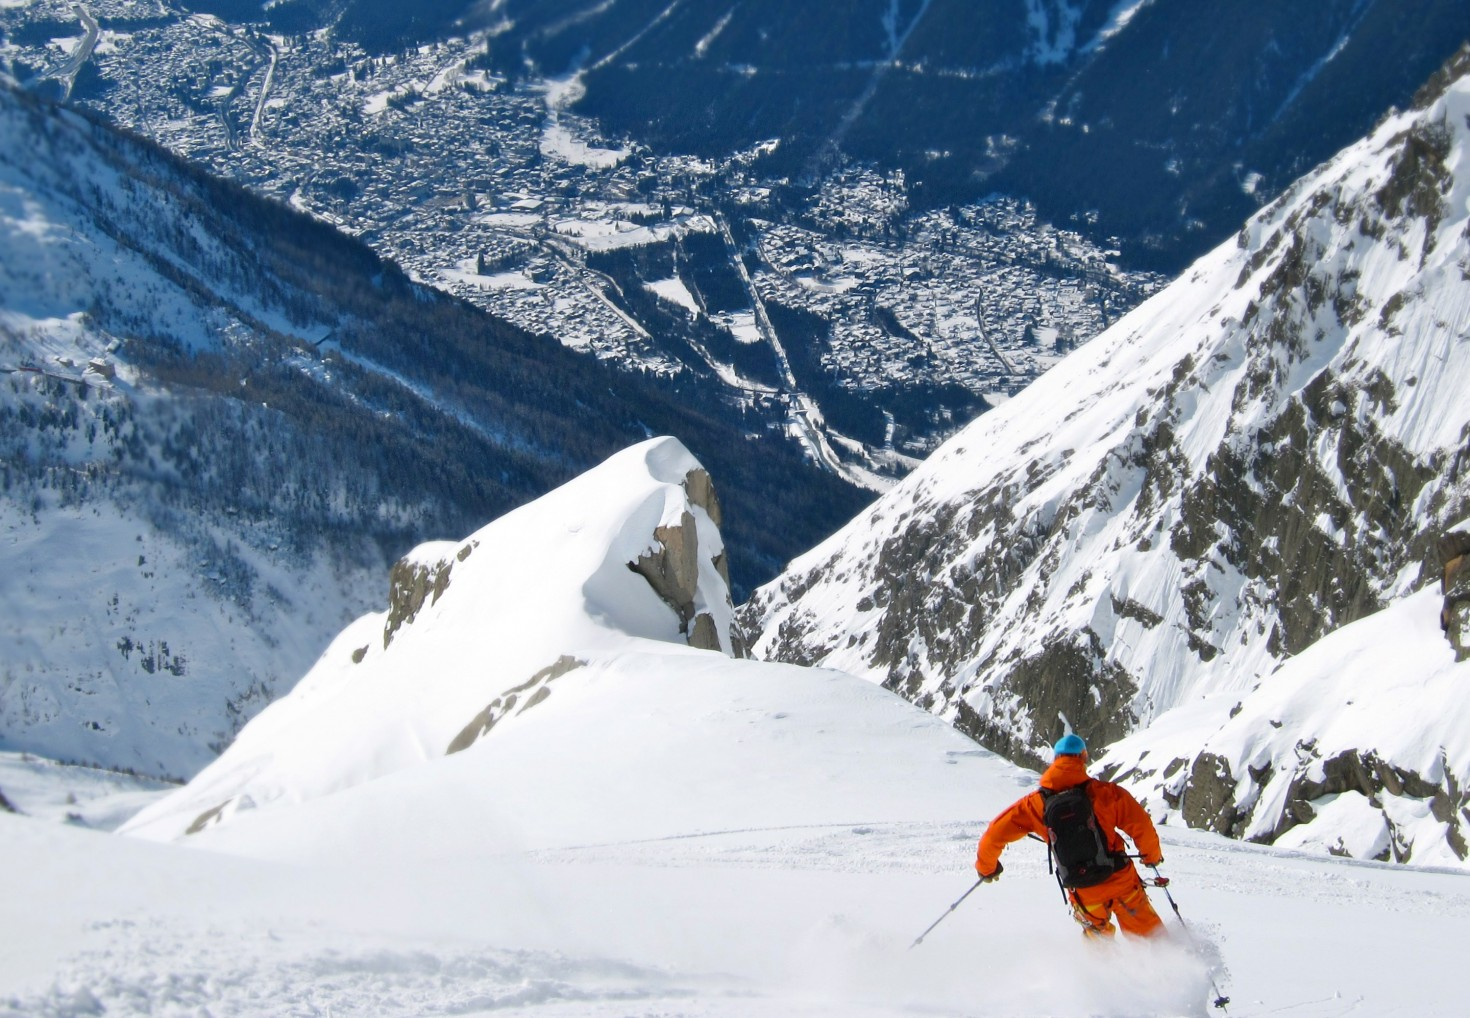 Chamonix off-piste classic, the Pas de Chevre